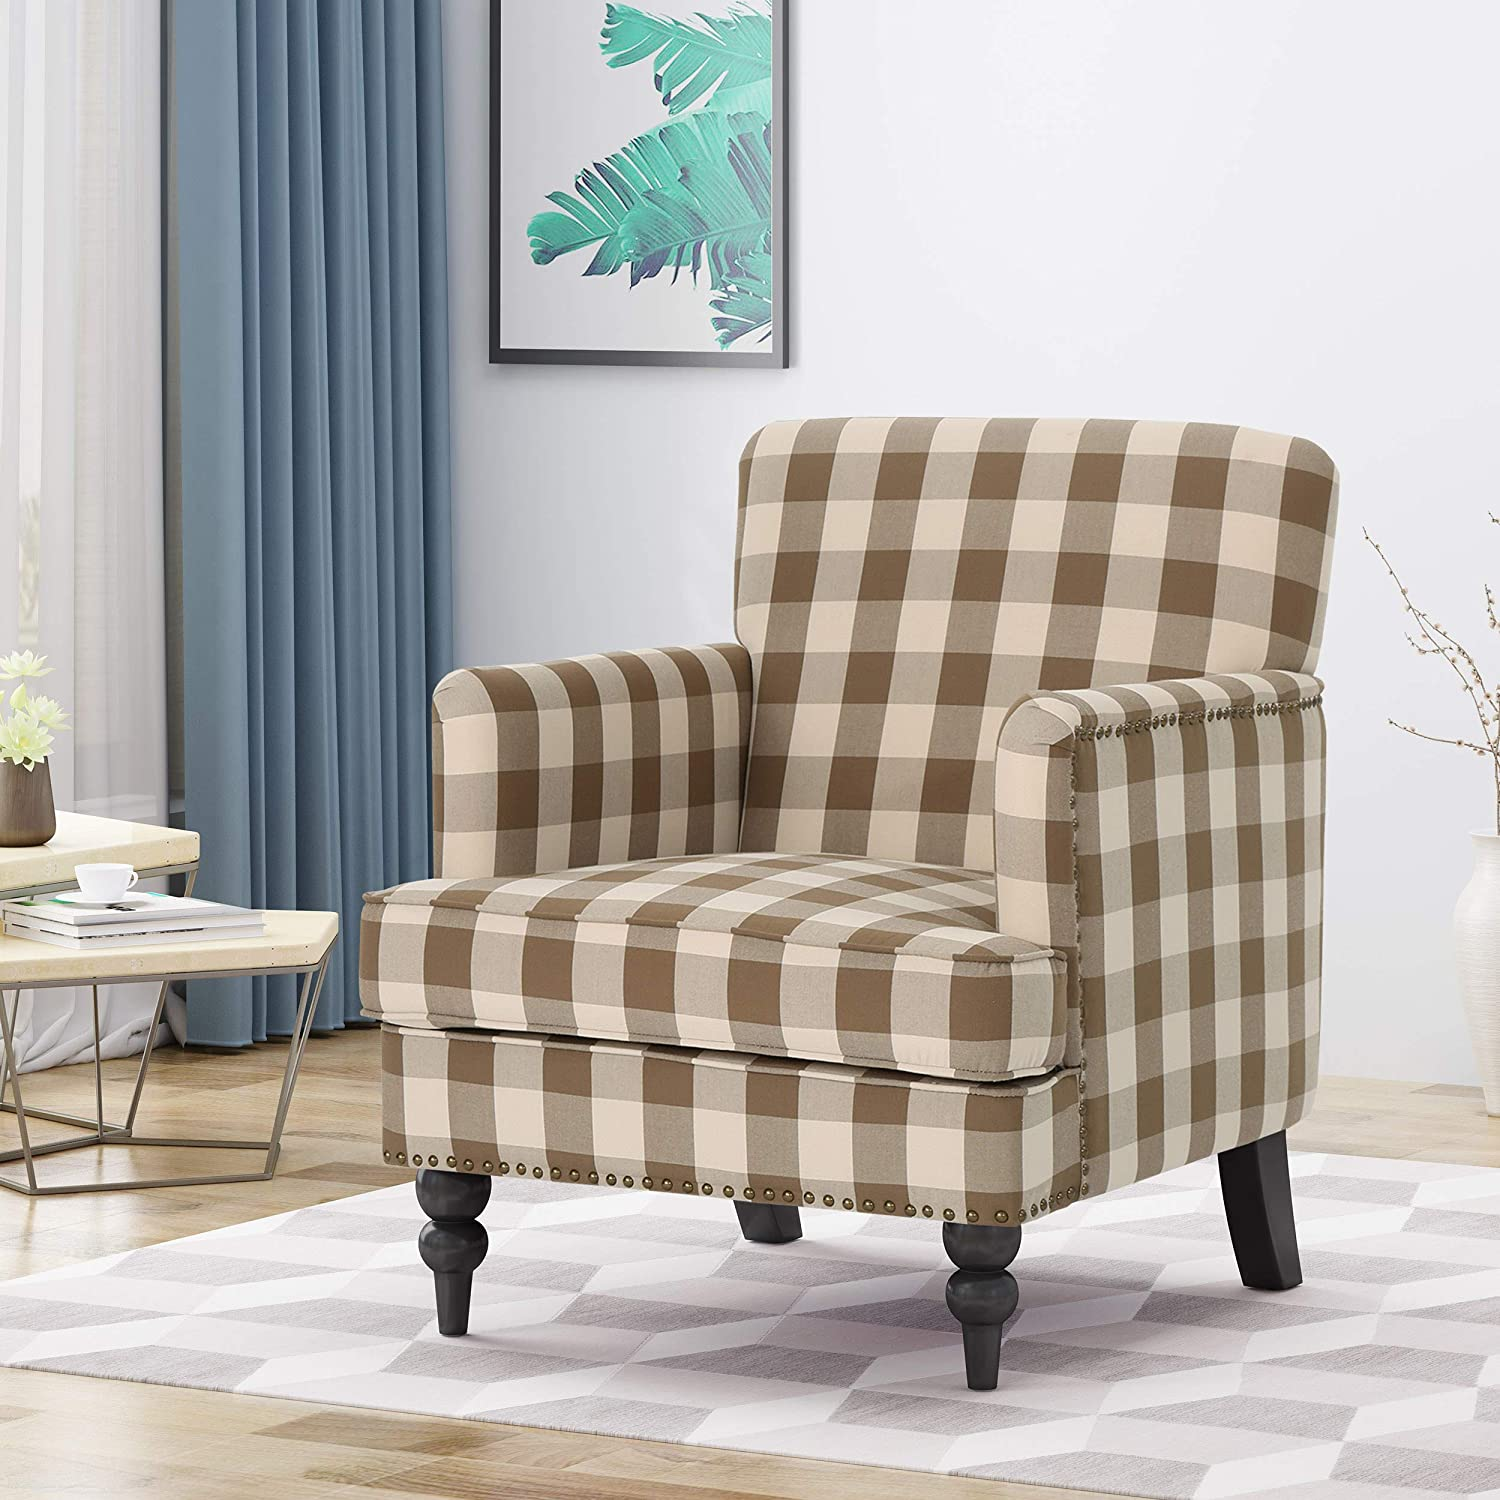 Christopher Knight Home 305561 Evete Tufted Fabric Club Chair, Brown Checkerboard, Dark Brown